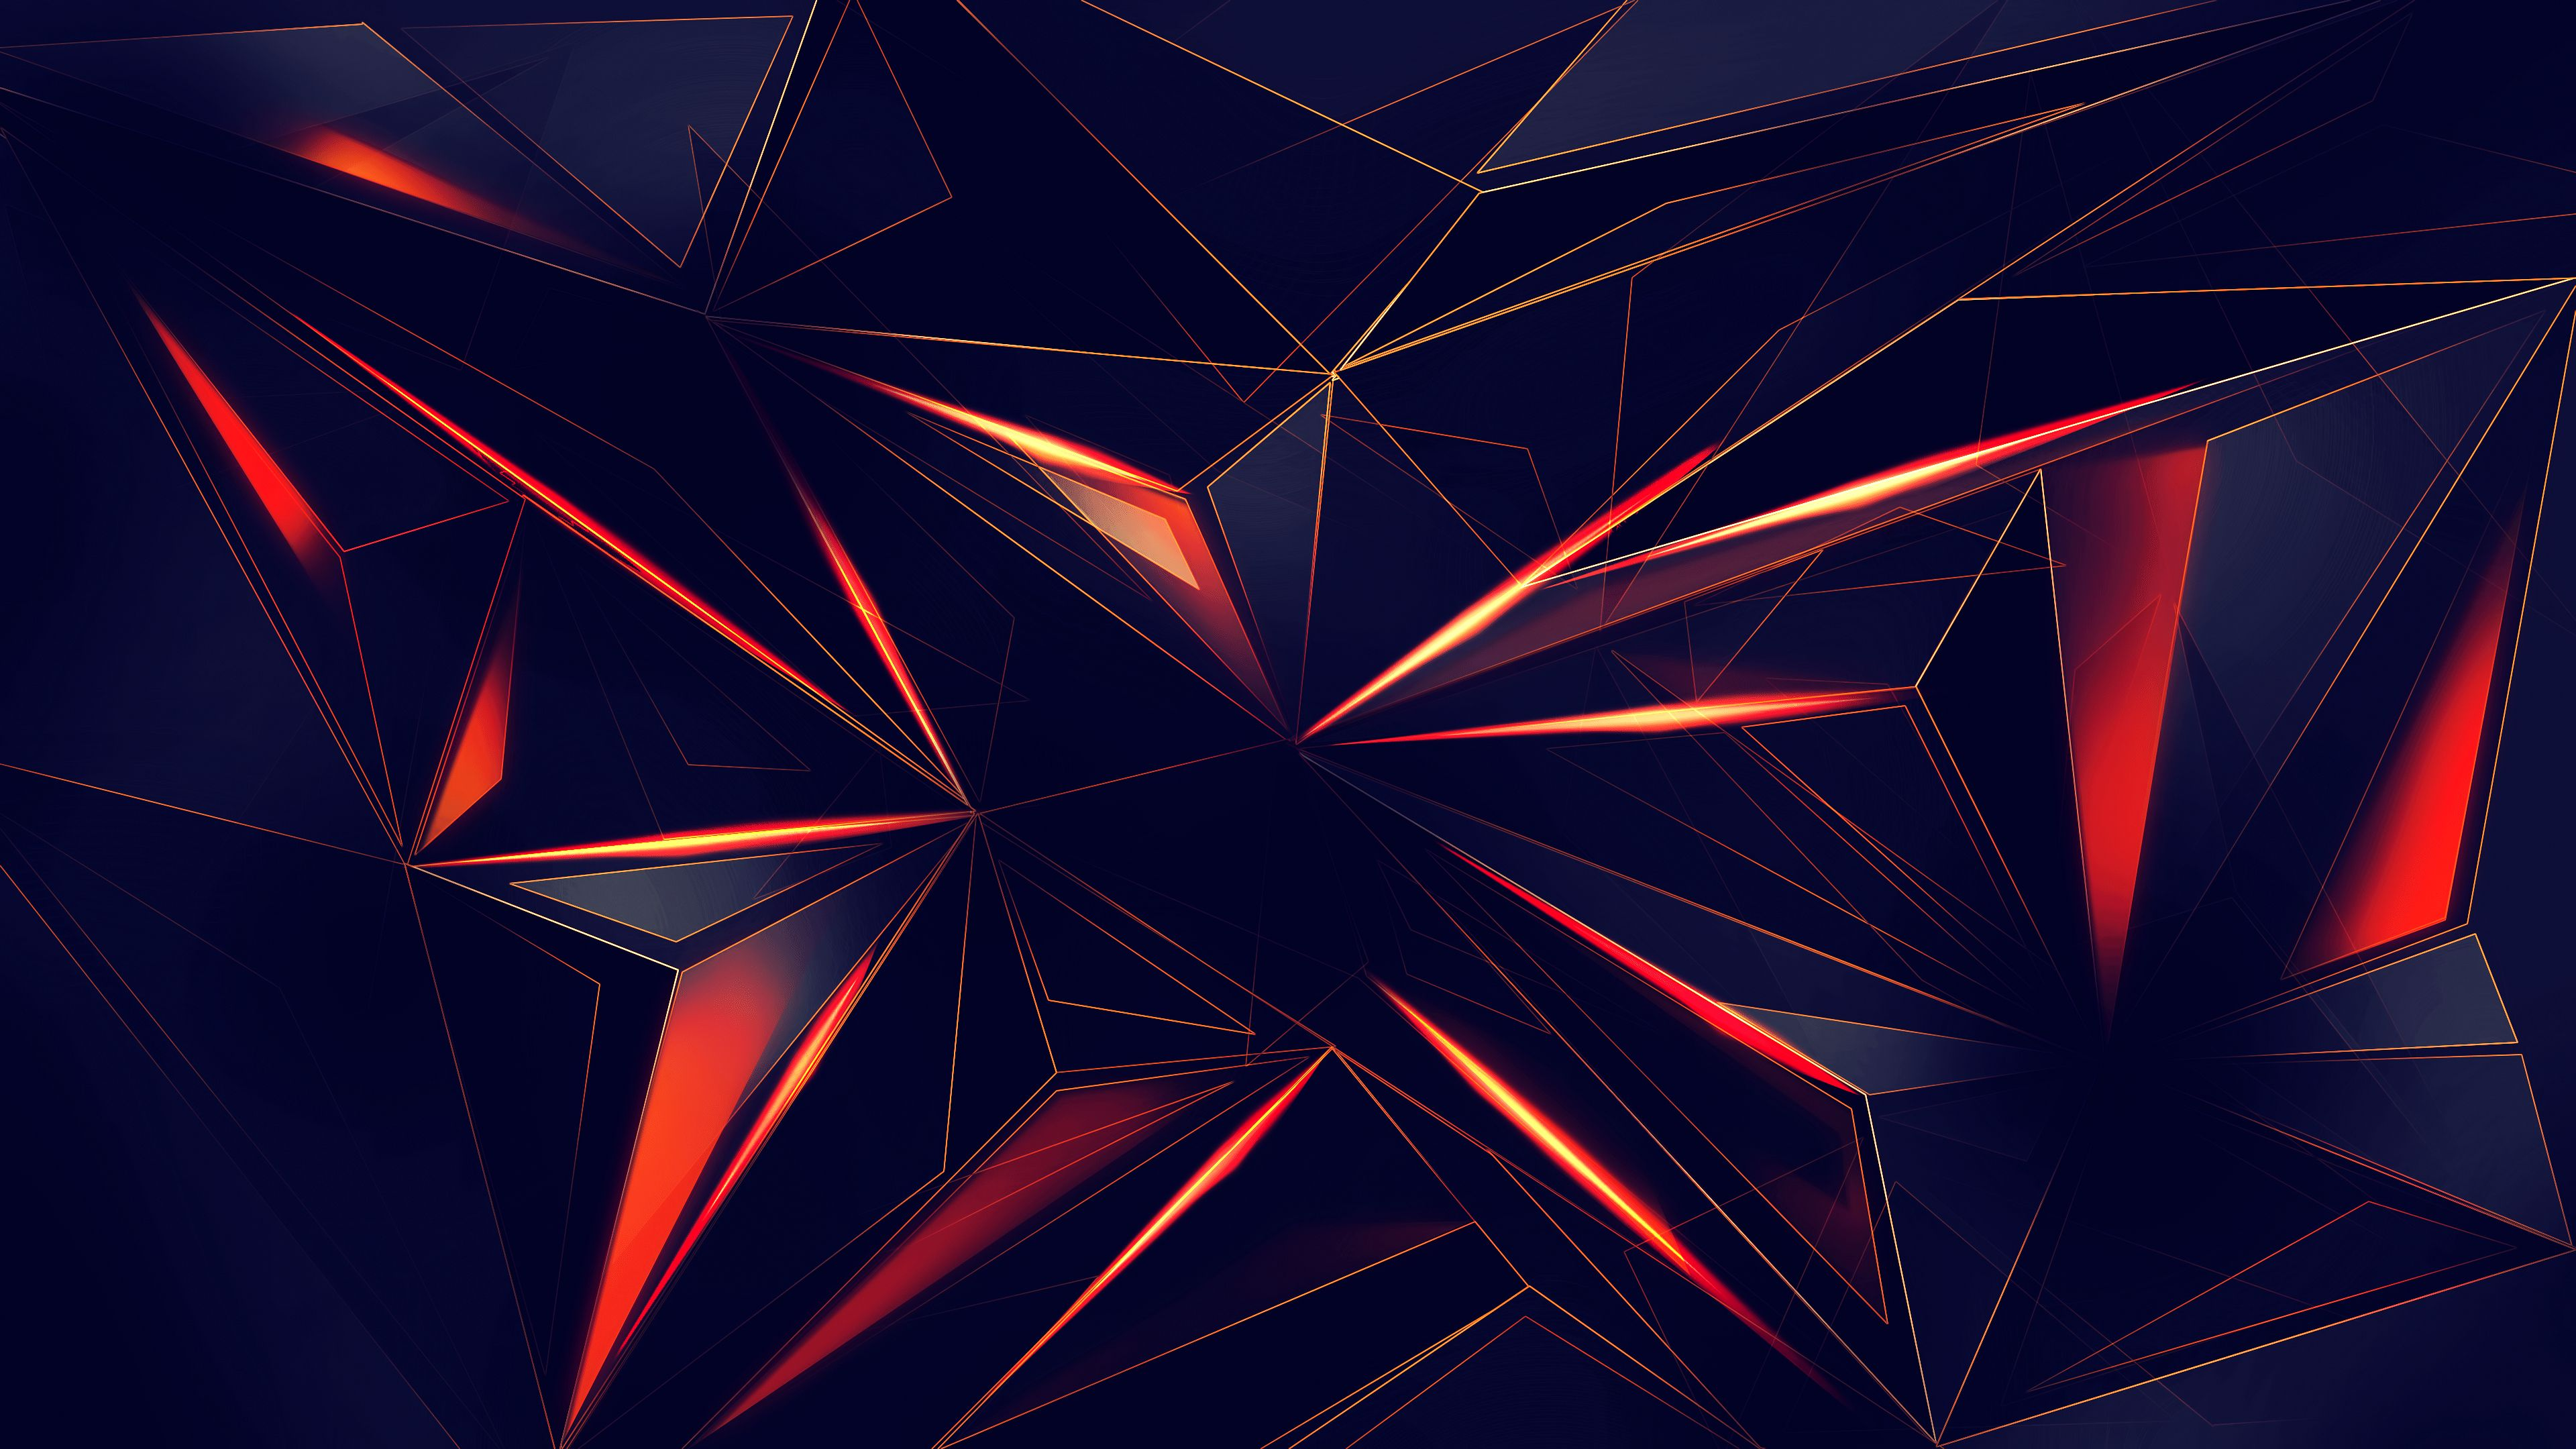 Orange And Blue Geometric Wallpapers - Wallpaper Cave